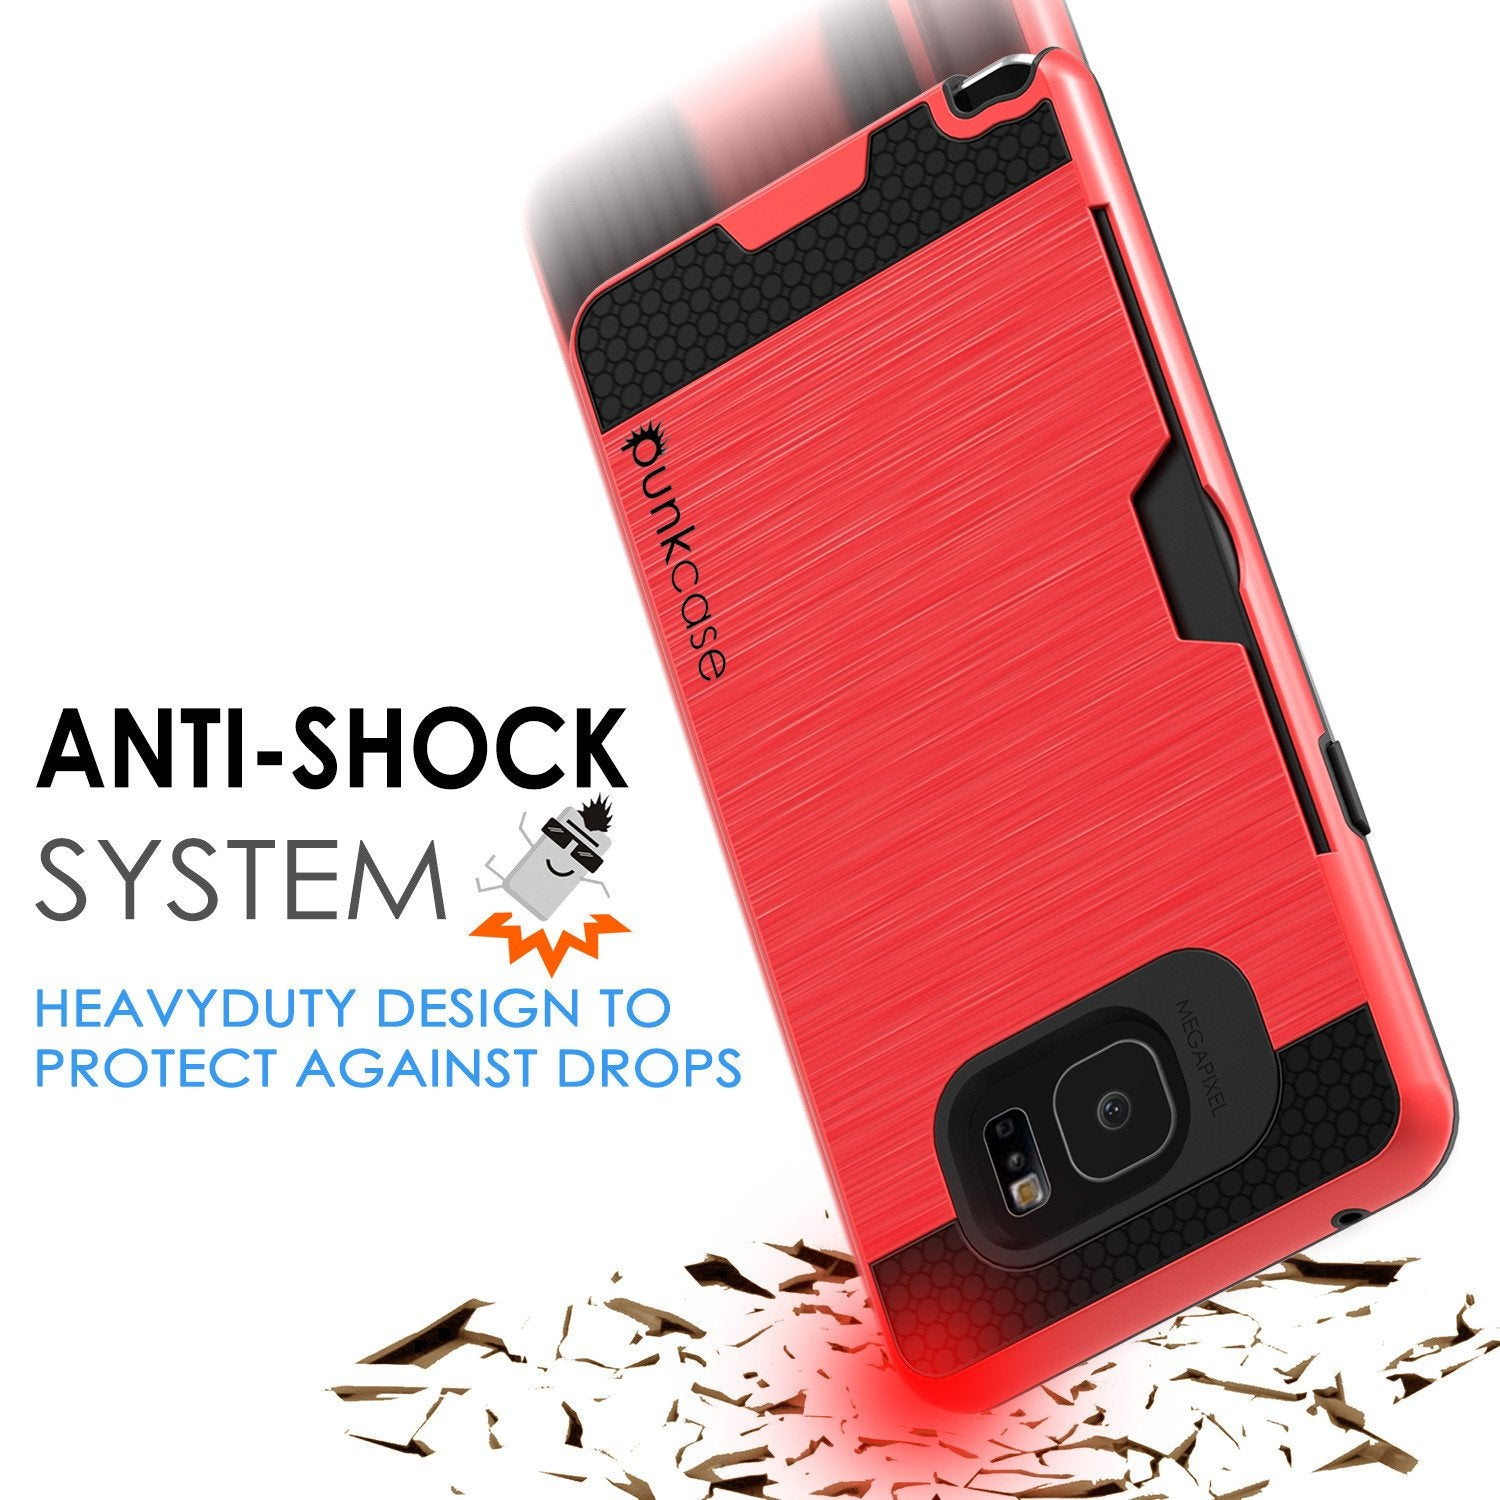 Galaxy Note 5 Case PunkCase SLOT Red Series Slim Armor Soft Cover Case w/ Tempered Glass - PunkCase NZ